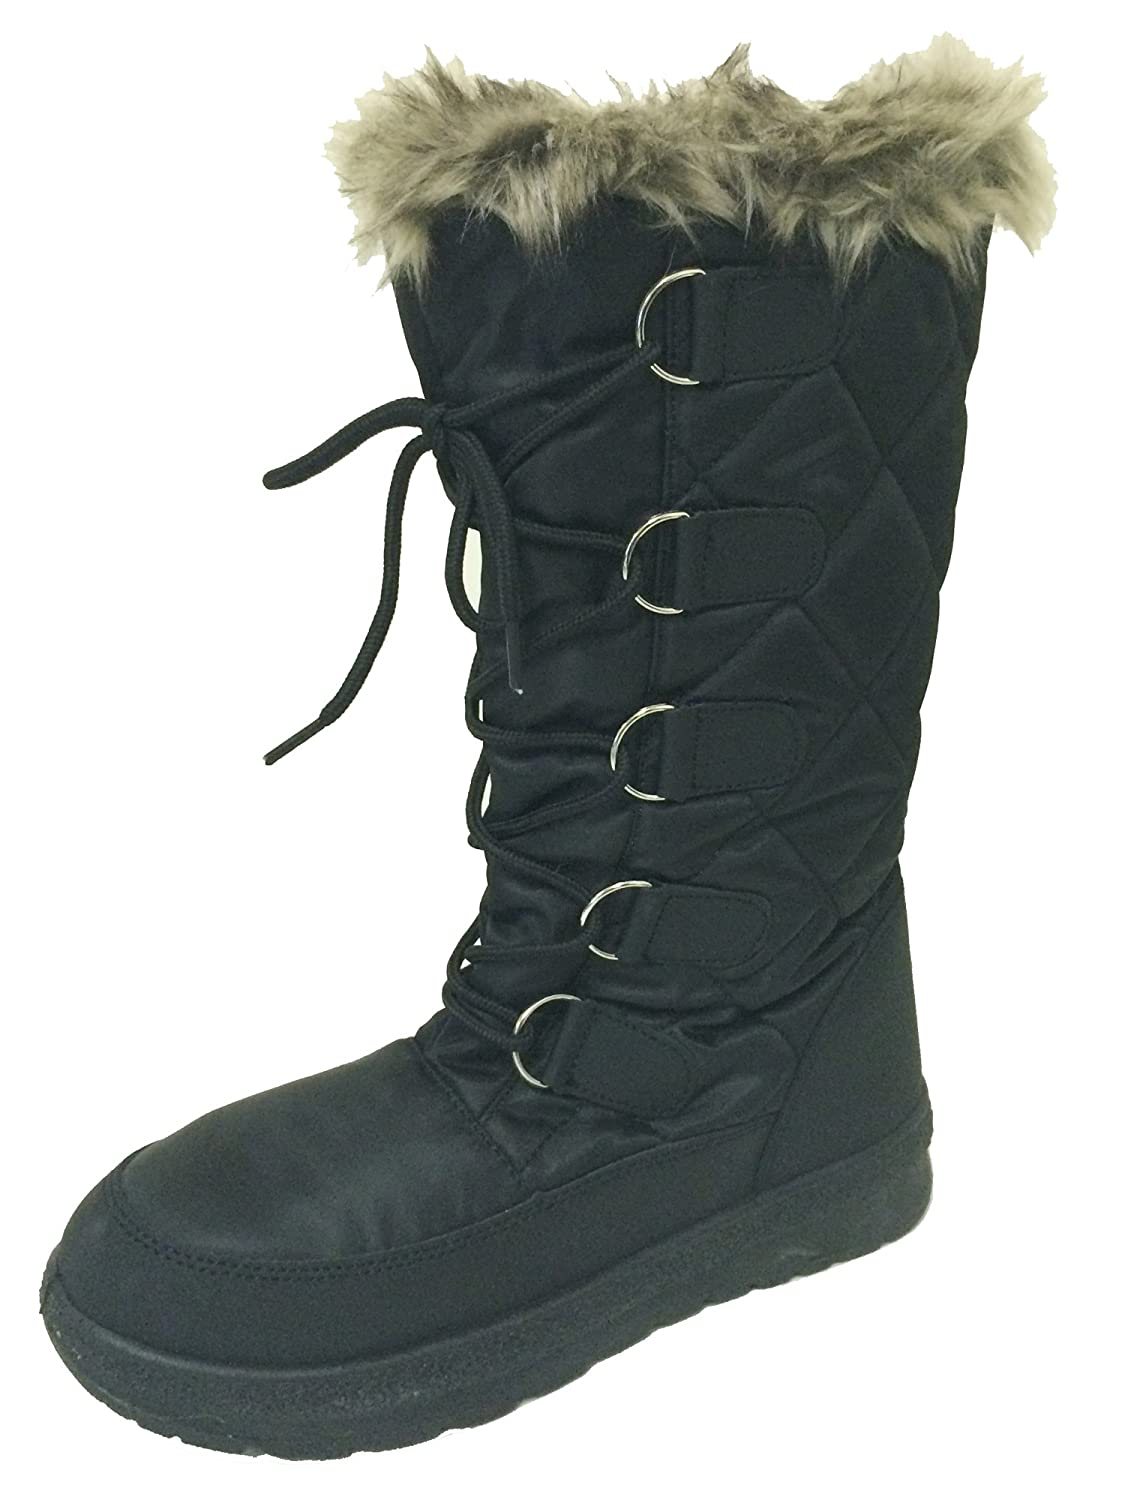 G-PLS Women's Winter Boots Cold Weather Fur Lined Insulated Zipper Water Resistant Ski Snow Shoes, Black